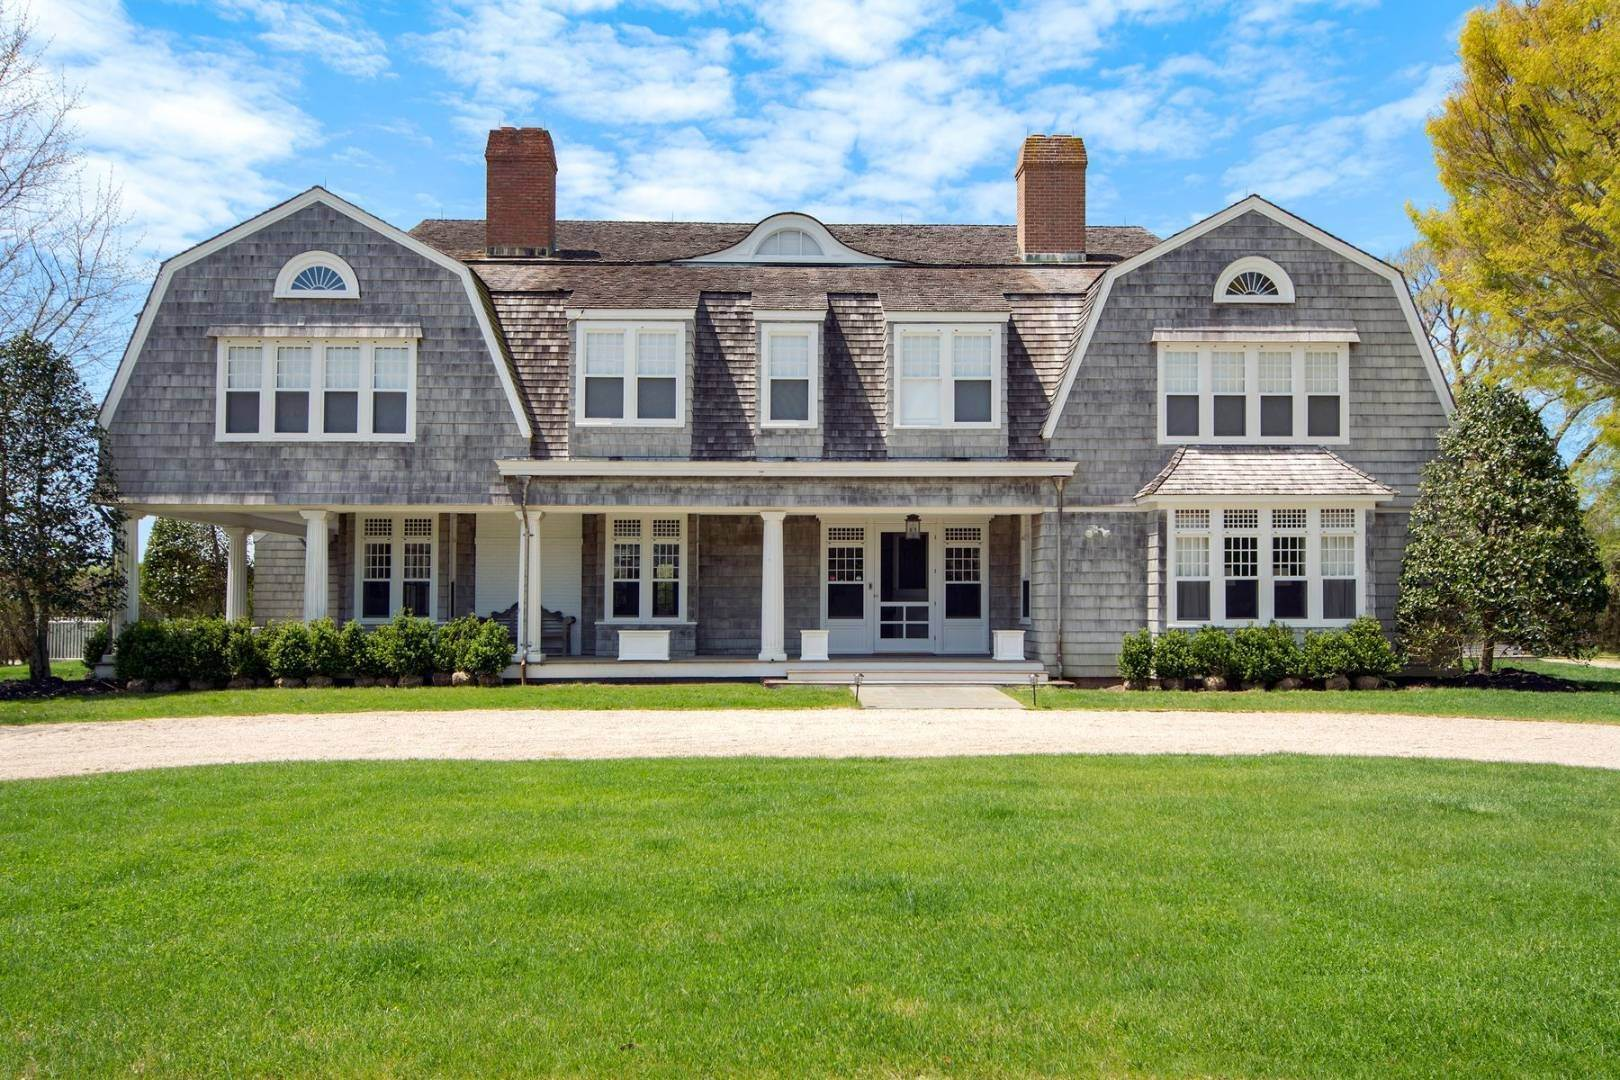 Single Family Home at First Neck Lane Estate Section Rental 505 First Neck Lane, Southampton, NY 11968